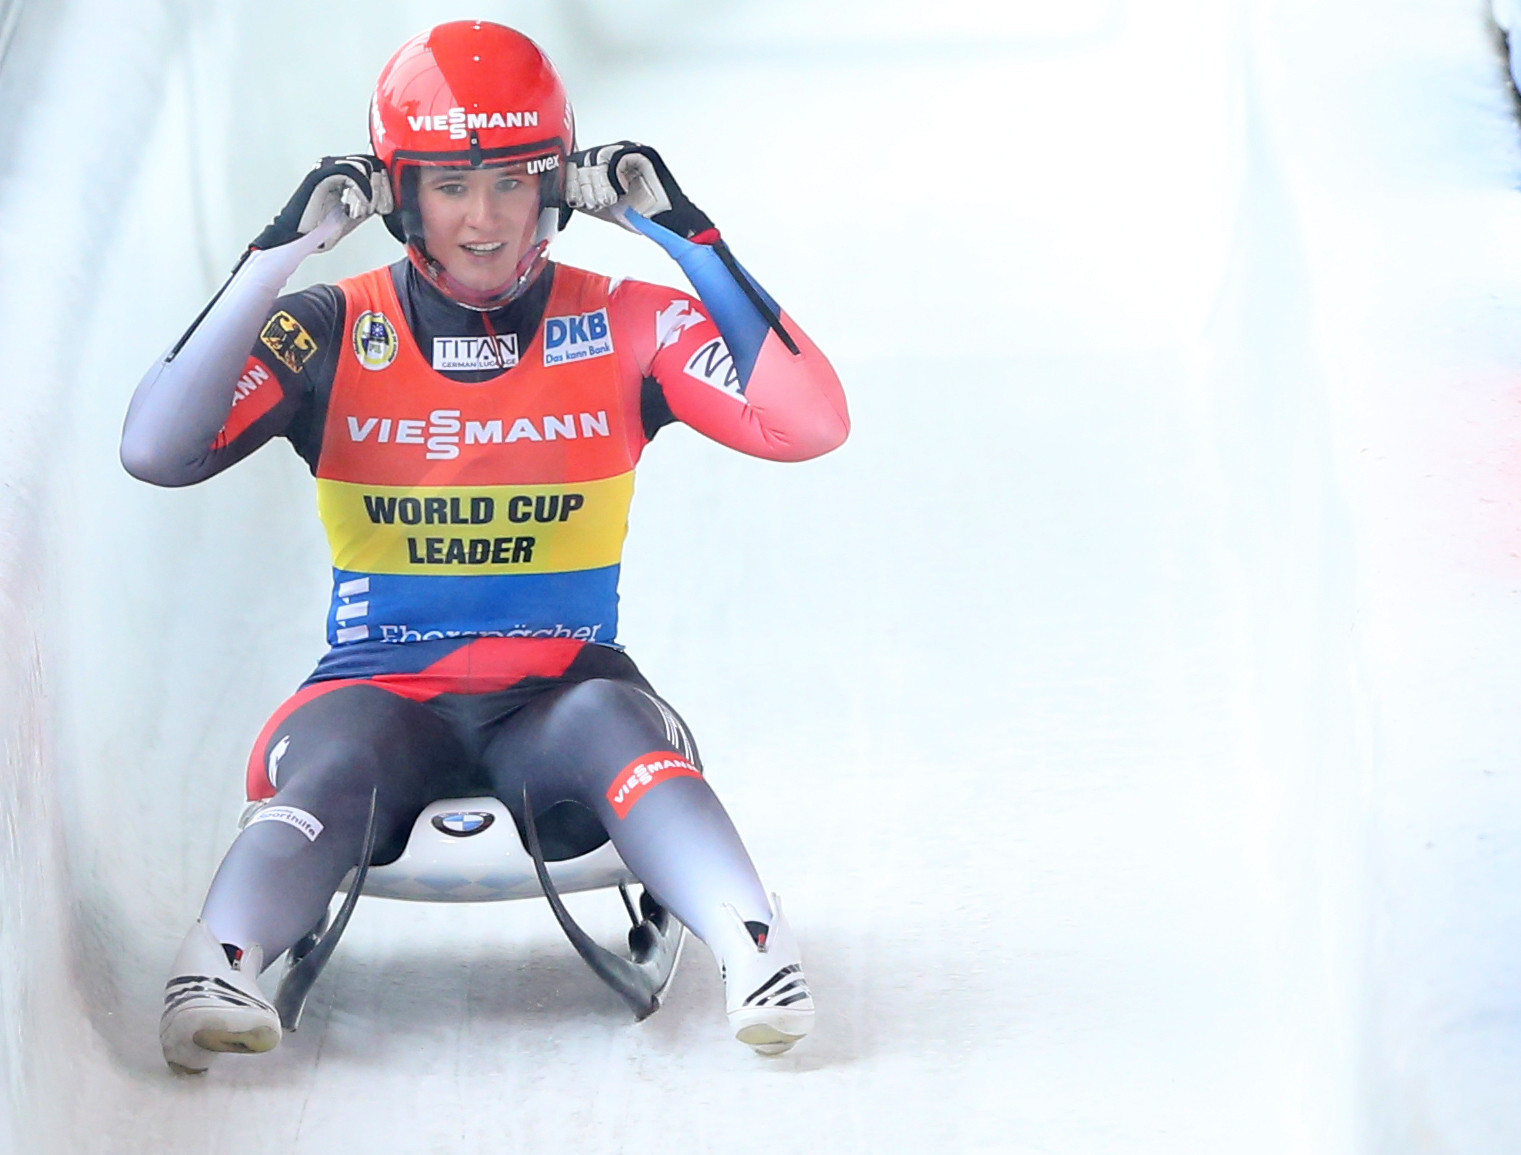 Natalie Geisenberger extended her lead at the top of the Luge World Cup rankings with victory in Lake Placid ©Getty Images